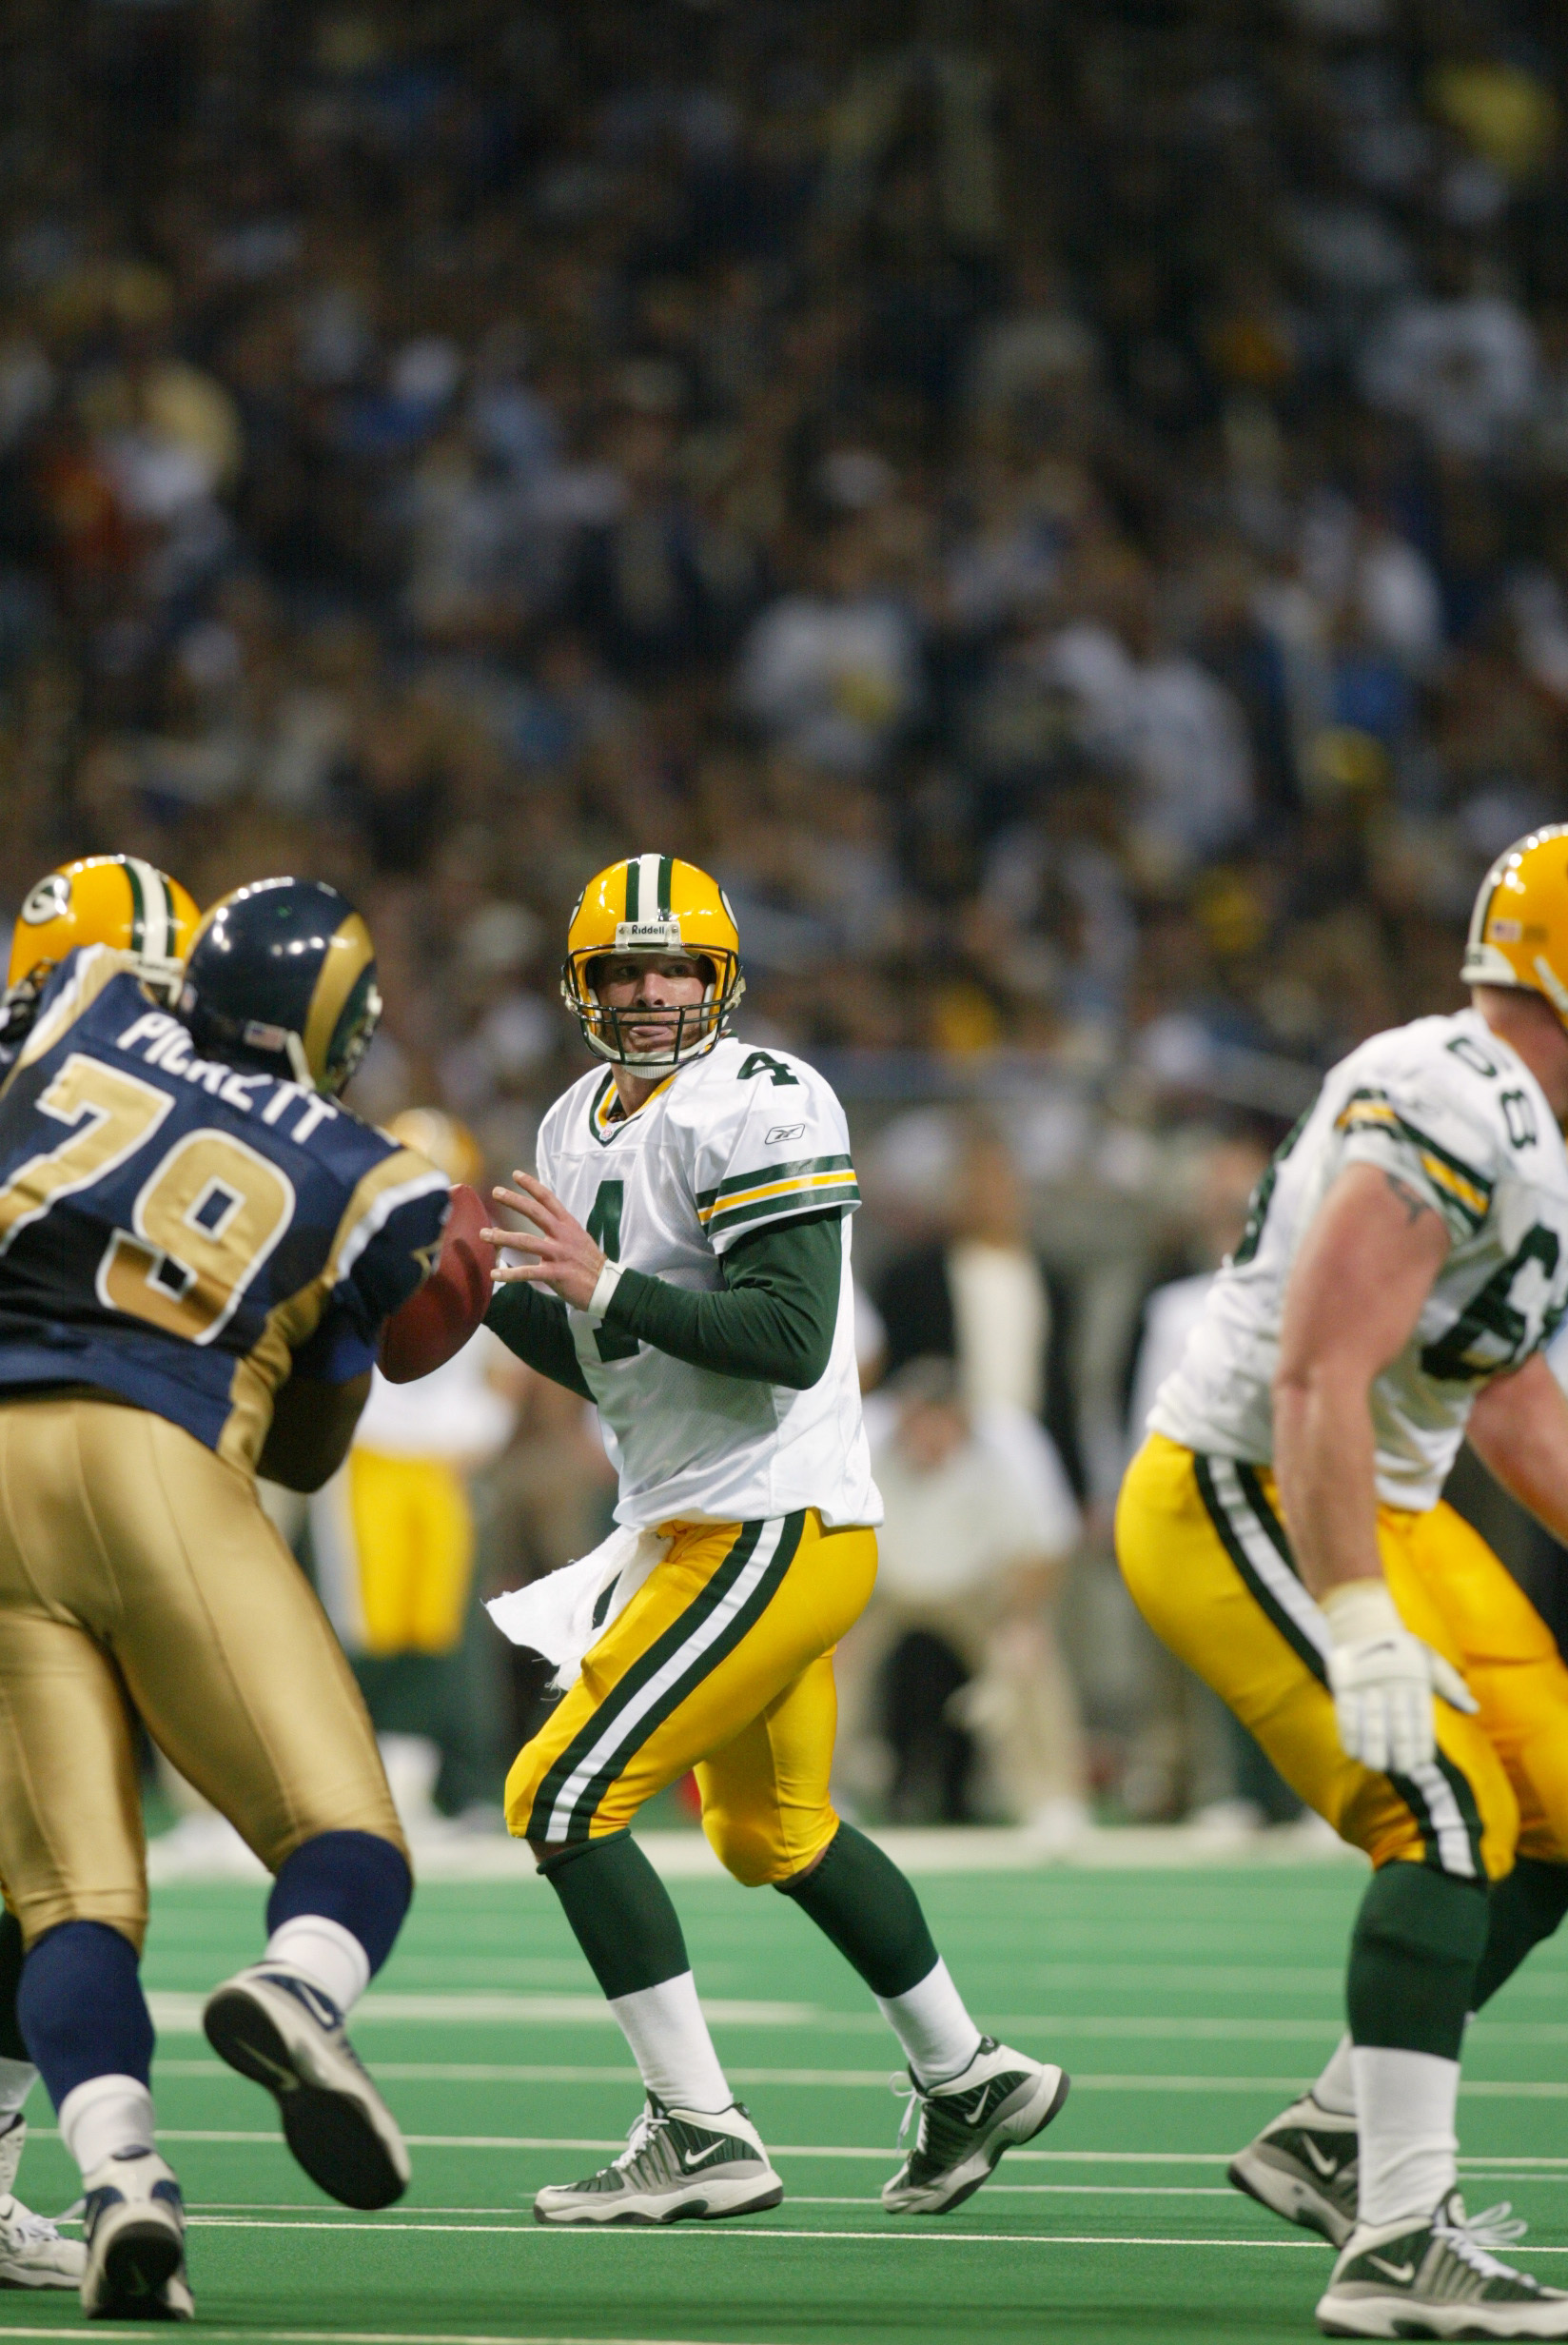 20 Jan 2002 : Quarterback Brett Favre of the Green Bay Packers during the game against the St.Louis Rams at the Dome at America's Center in St.Louis, Missouri. The Rams won 45-17. DIGITAL IMAGE. Mandatory Credit: Tom Hauck/Getty Images